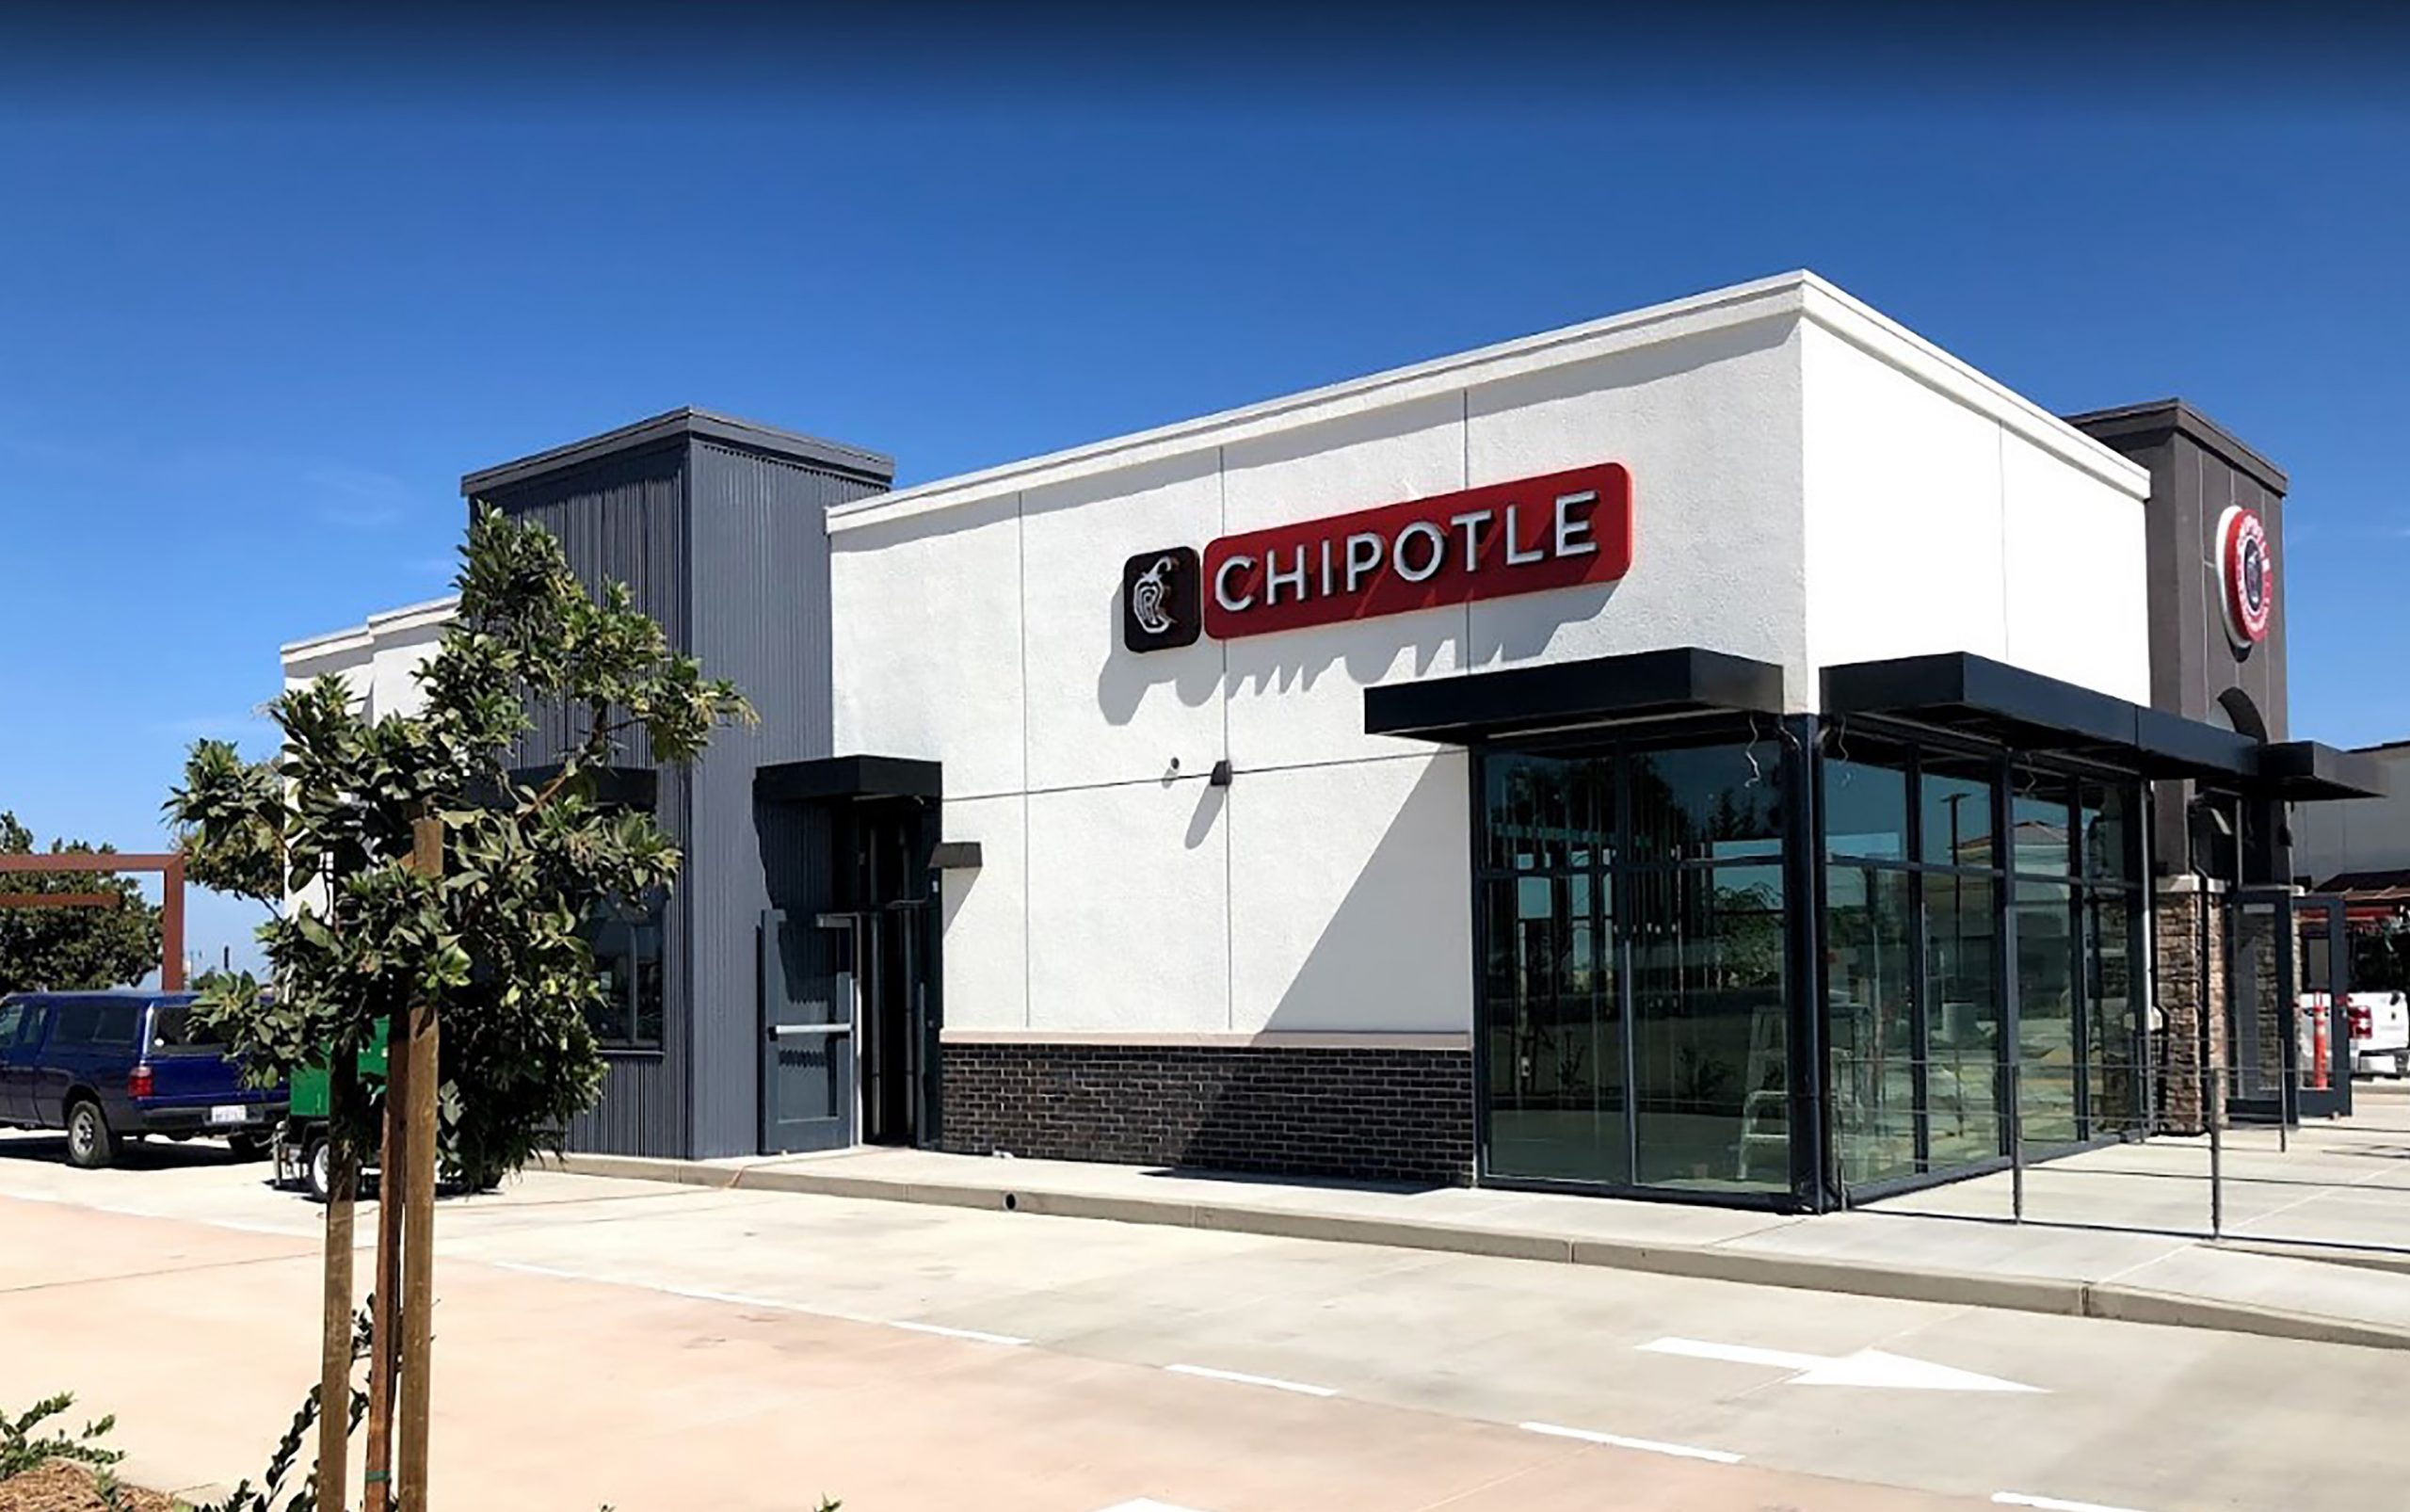 Hanley Investment Group Arranges Sale of New Single-Tenant Chipotle for $3,185,000 in San Joaquin County, Calif. 1